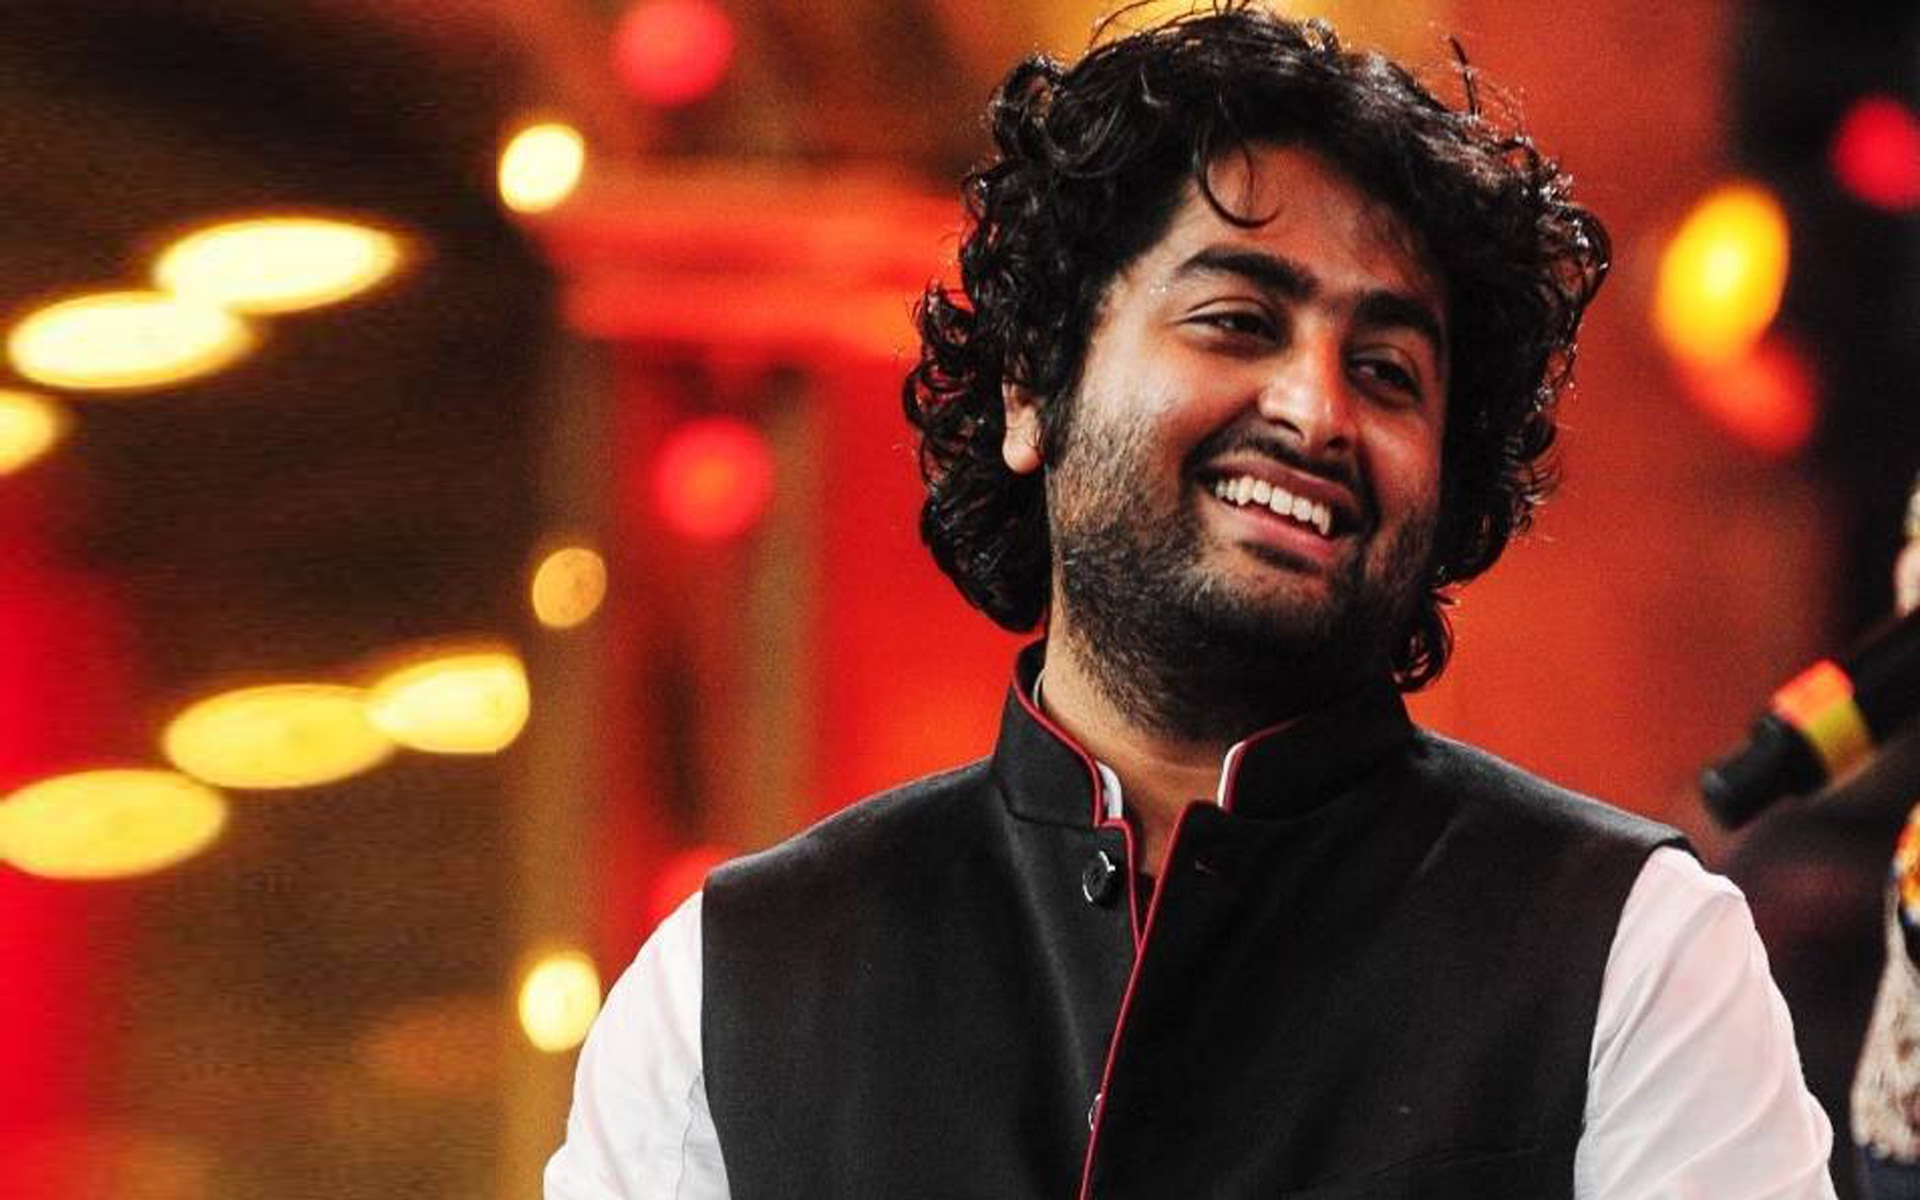 Arijit Singh's Concert in Dubai: Here's How to Win TWO Tickets!